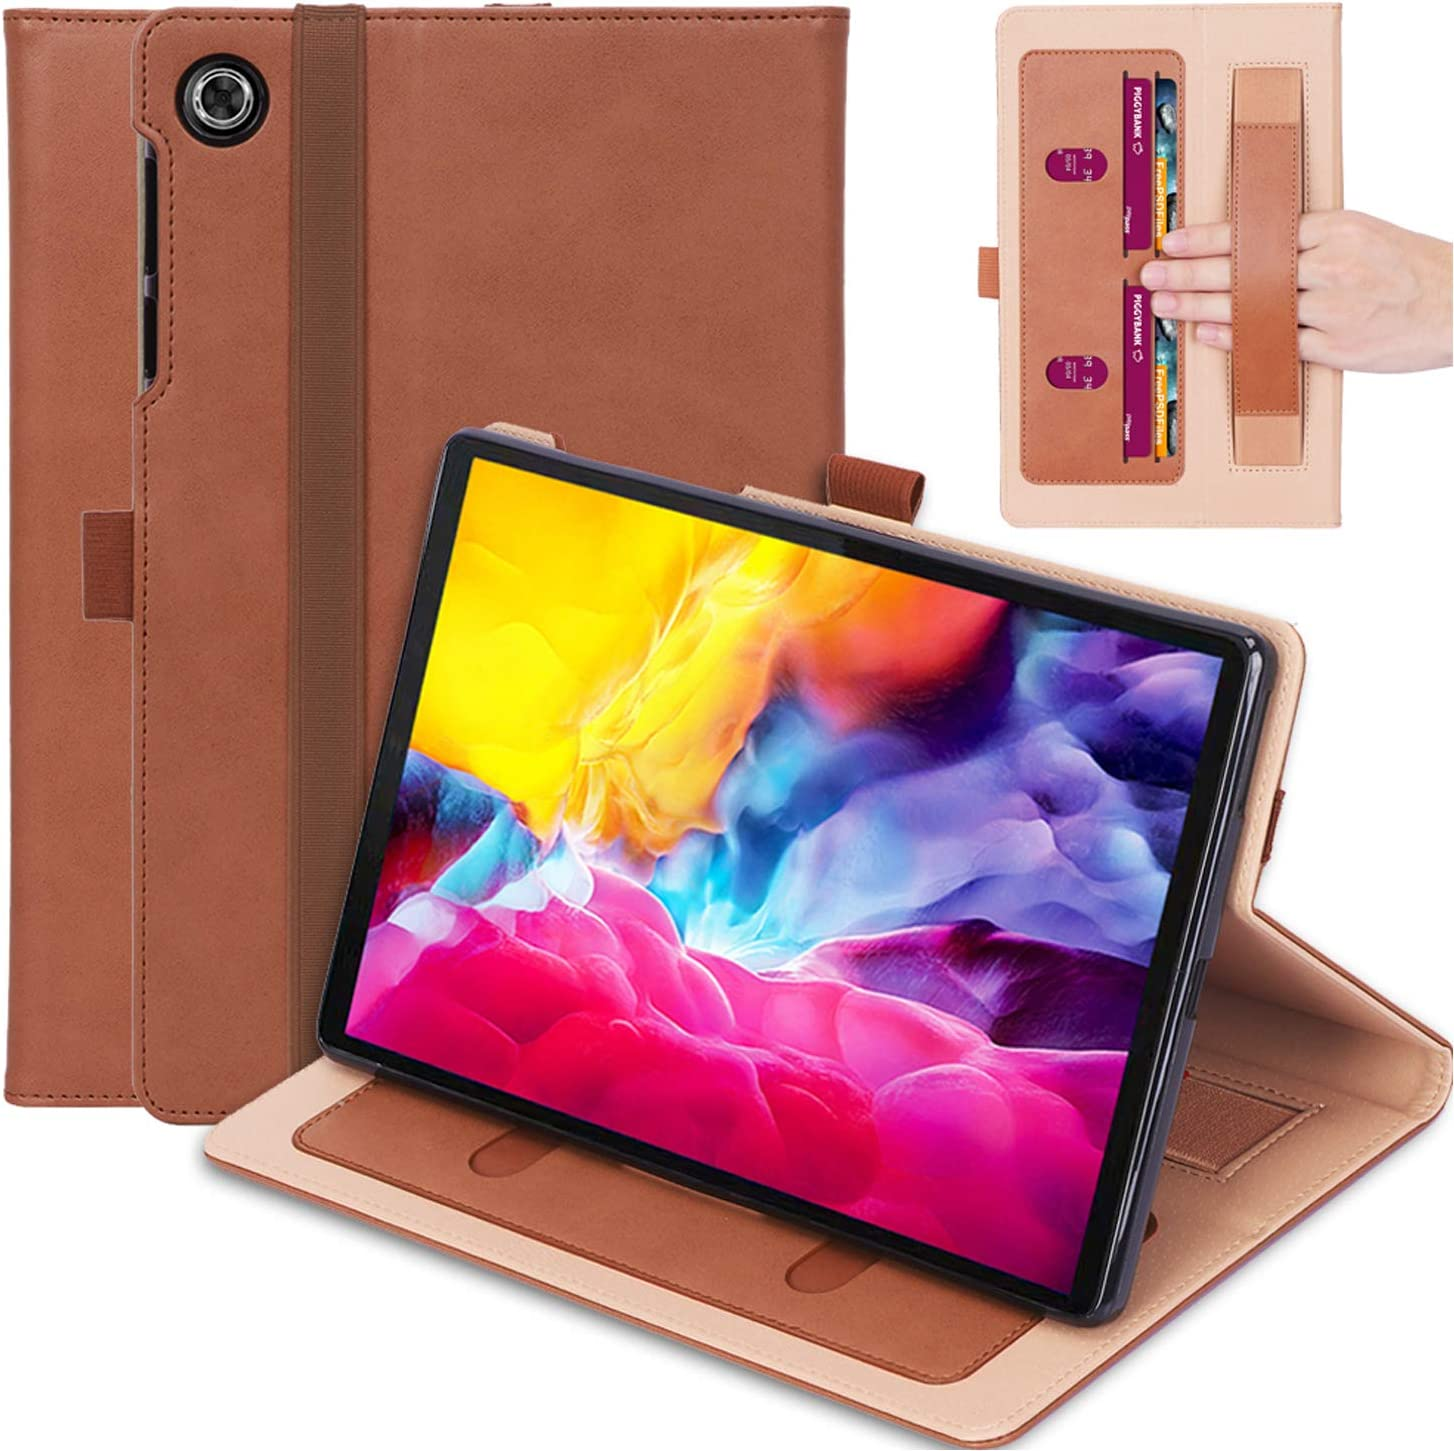 Timewall Multi-Angle Stand Case for Lenovo Tab M10 HD TB-X505F TB-X505N TB-X505L 10.1 Inch Tablet 2019, with Hand Strap Card Cash Slot Elastic Band Pen Holder PU Leather Smart Full Cove Brown